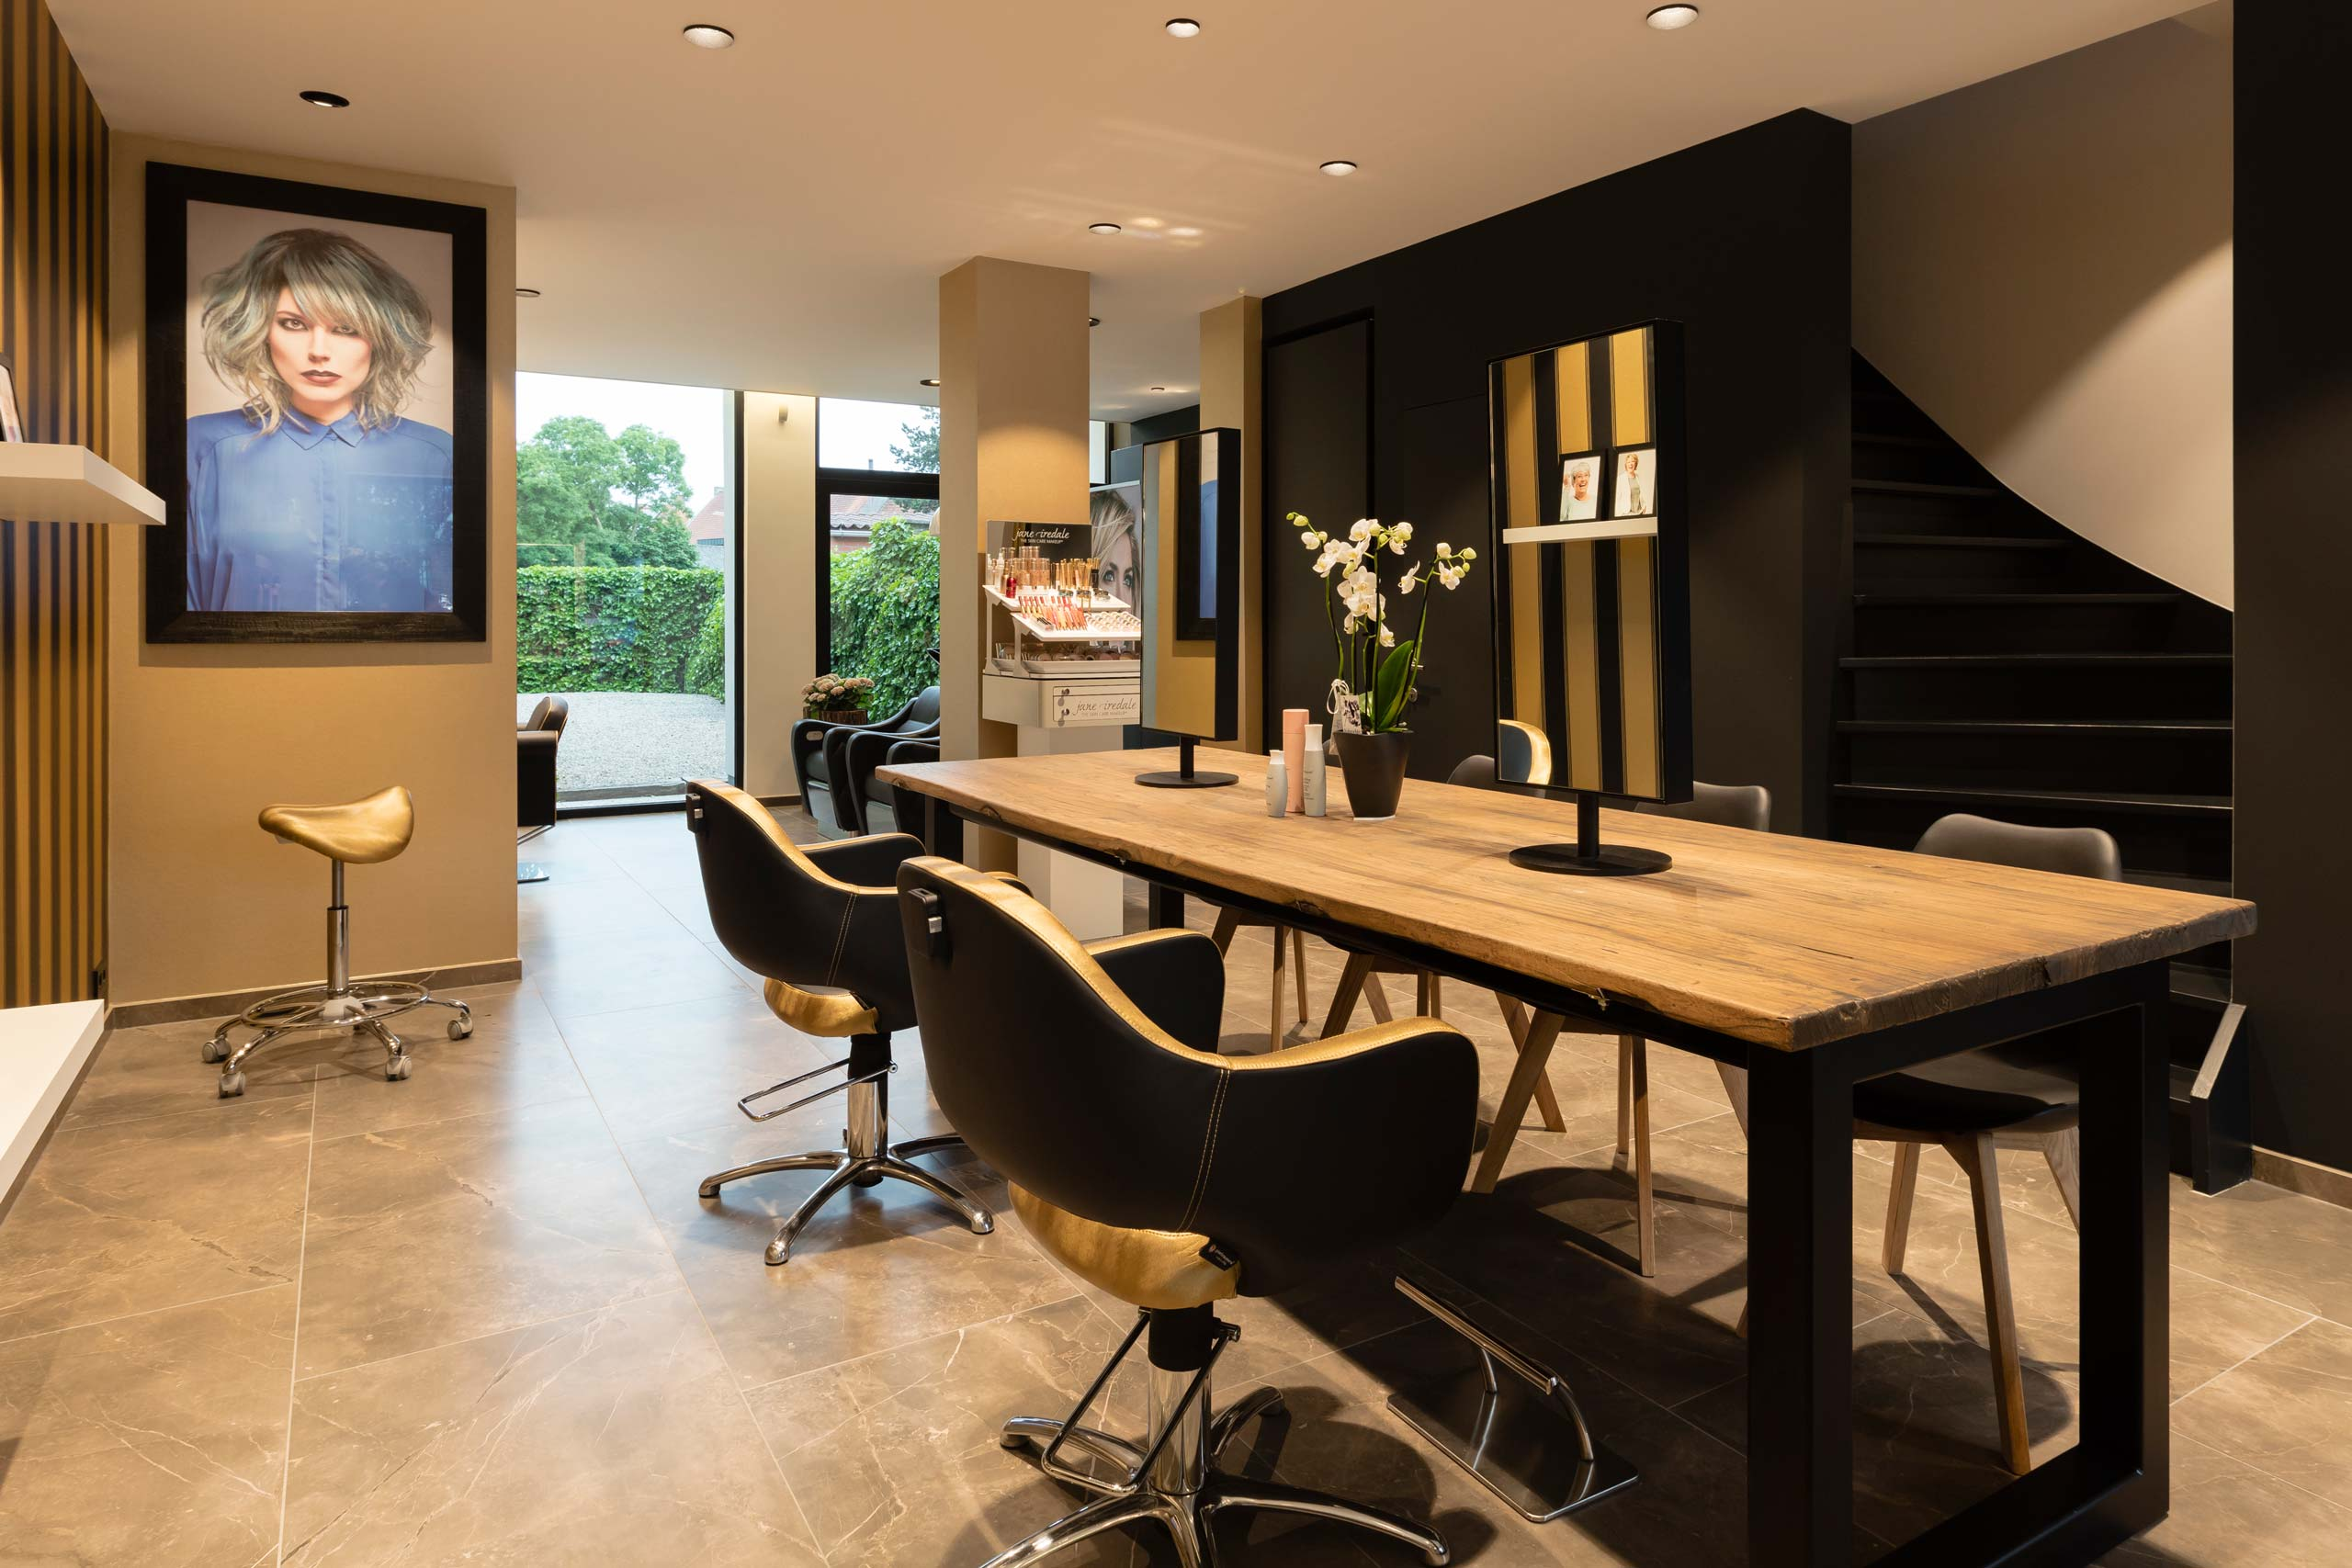 Hair more by karine uvijn salon for Kappersinterieur